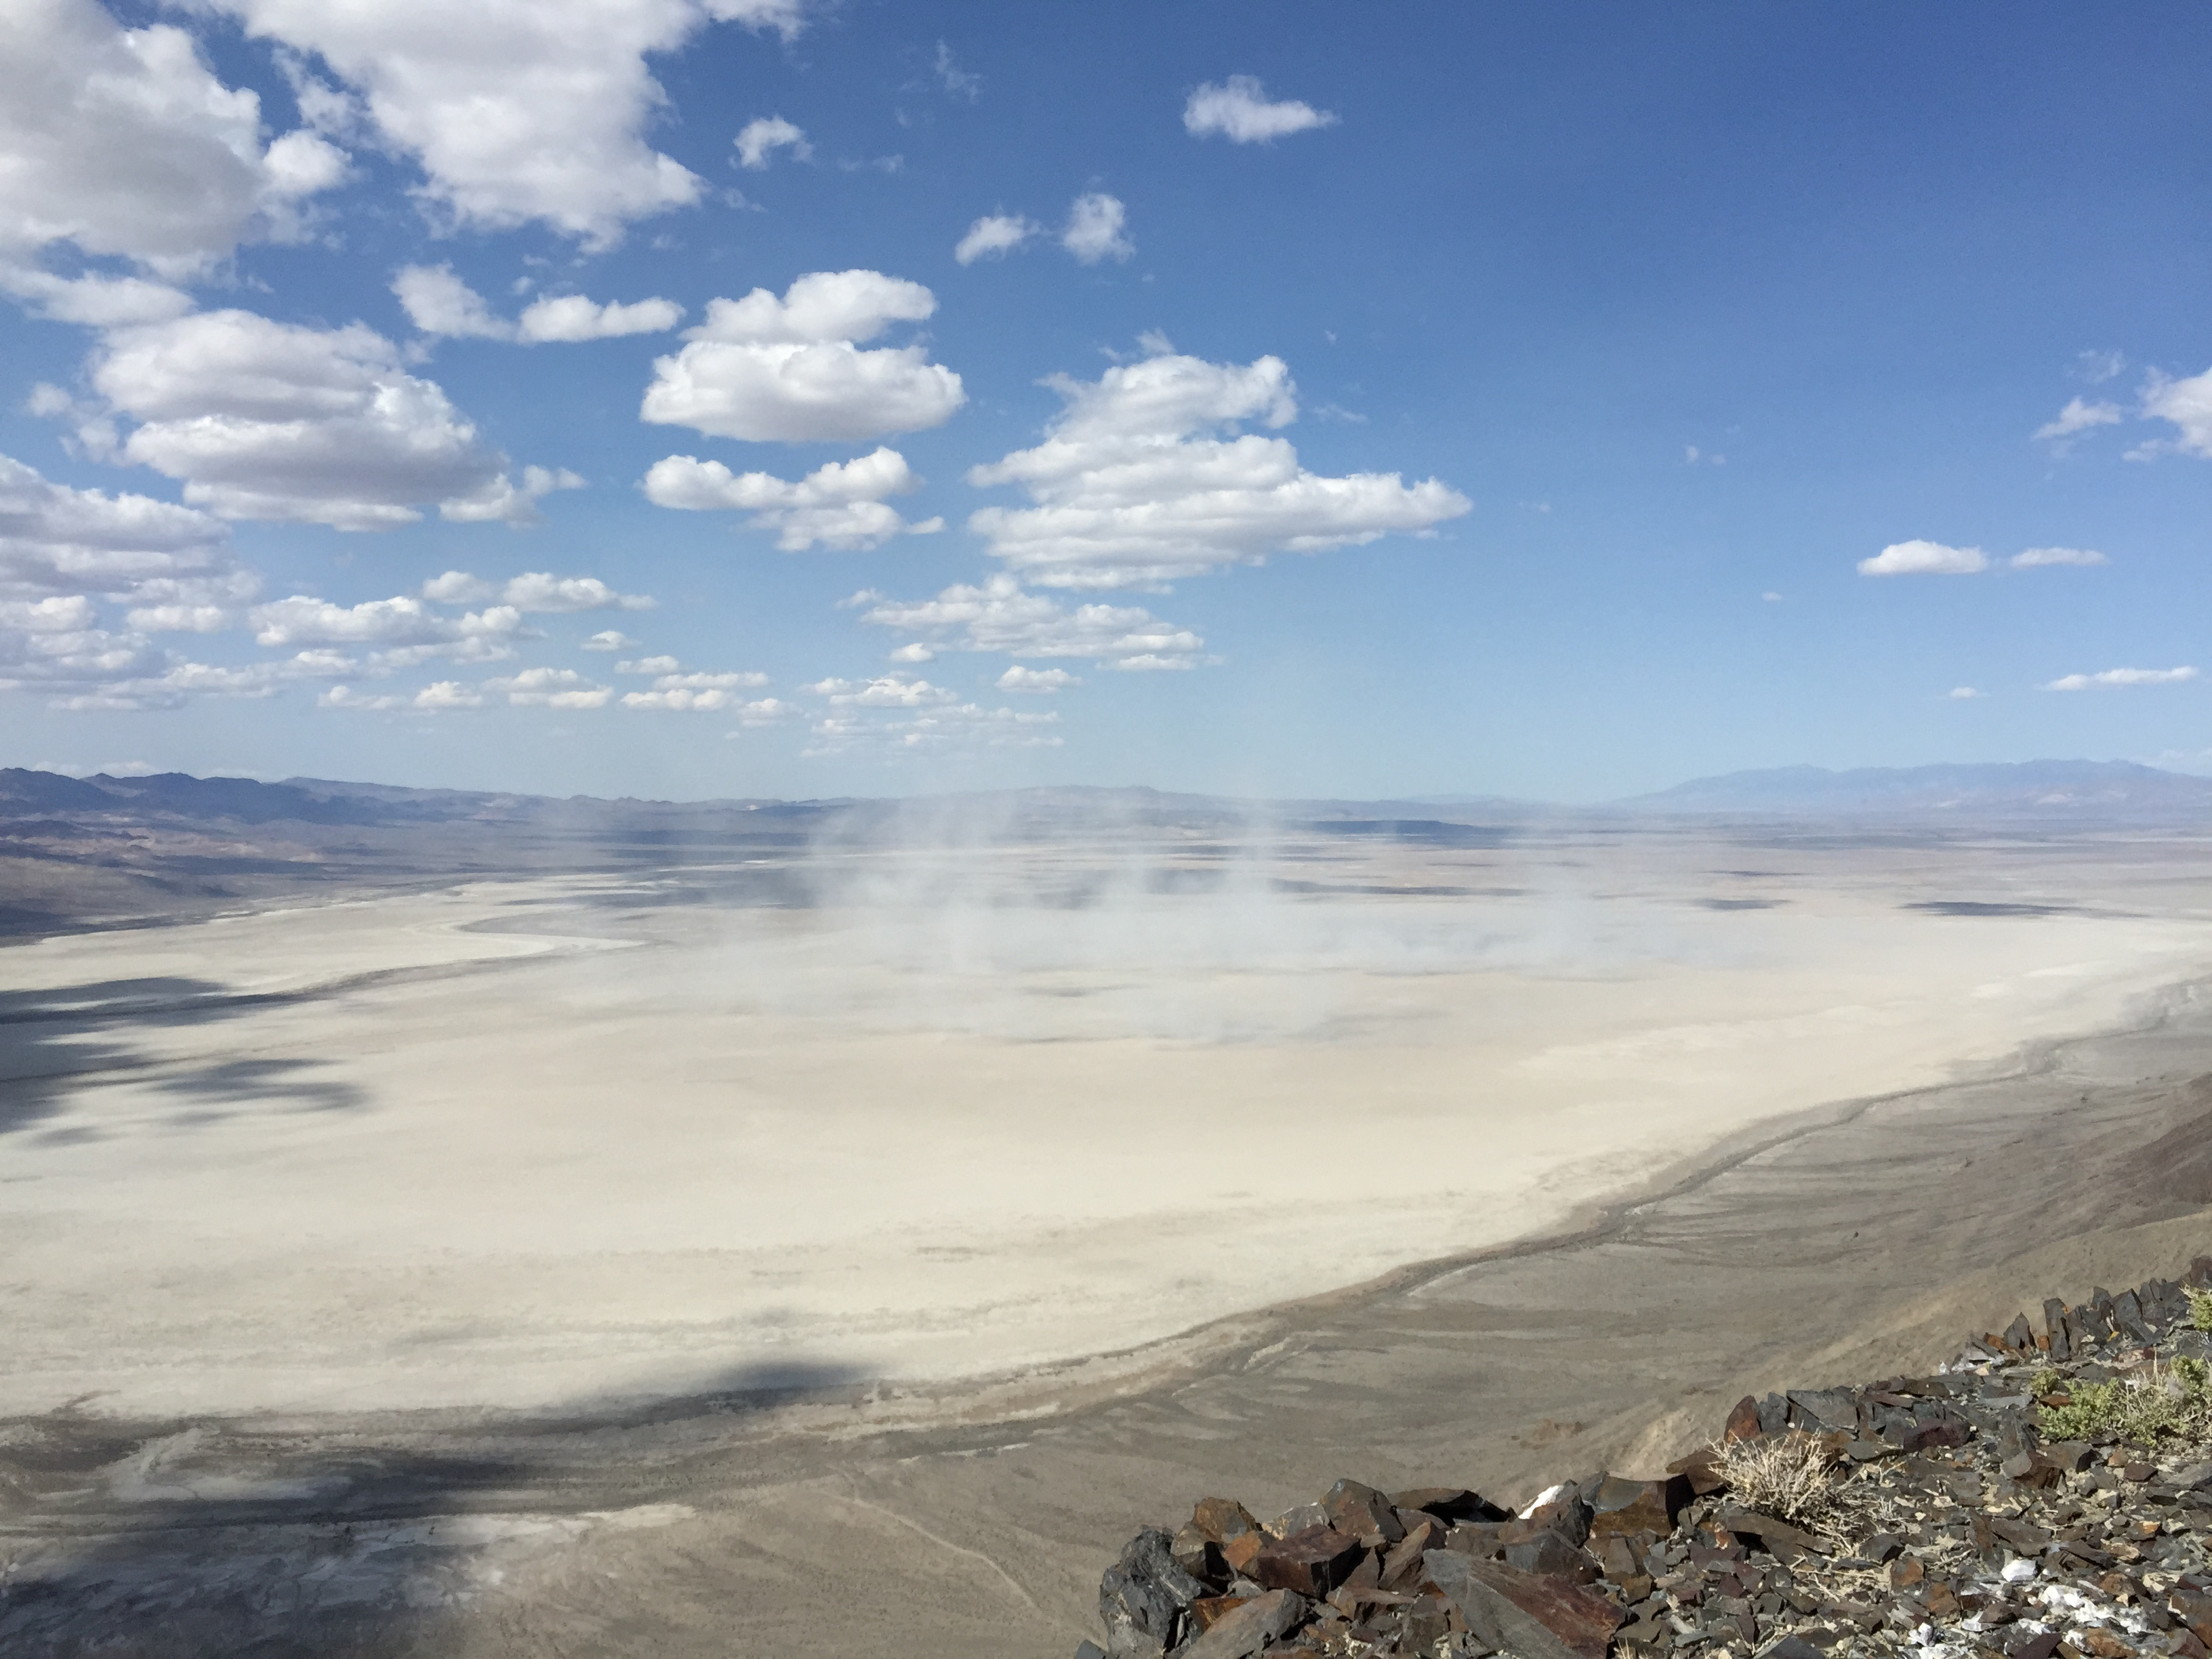 File:2015-04-18 15 40 14 Dust blowing off the Humboldt ...